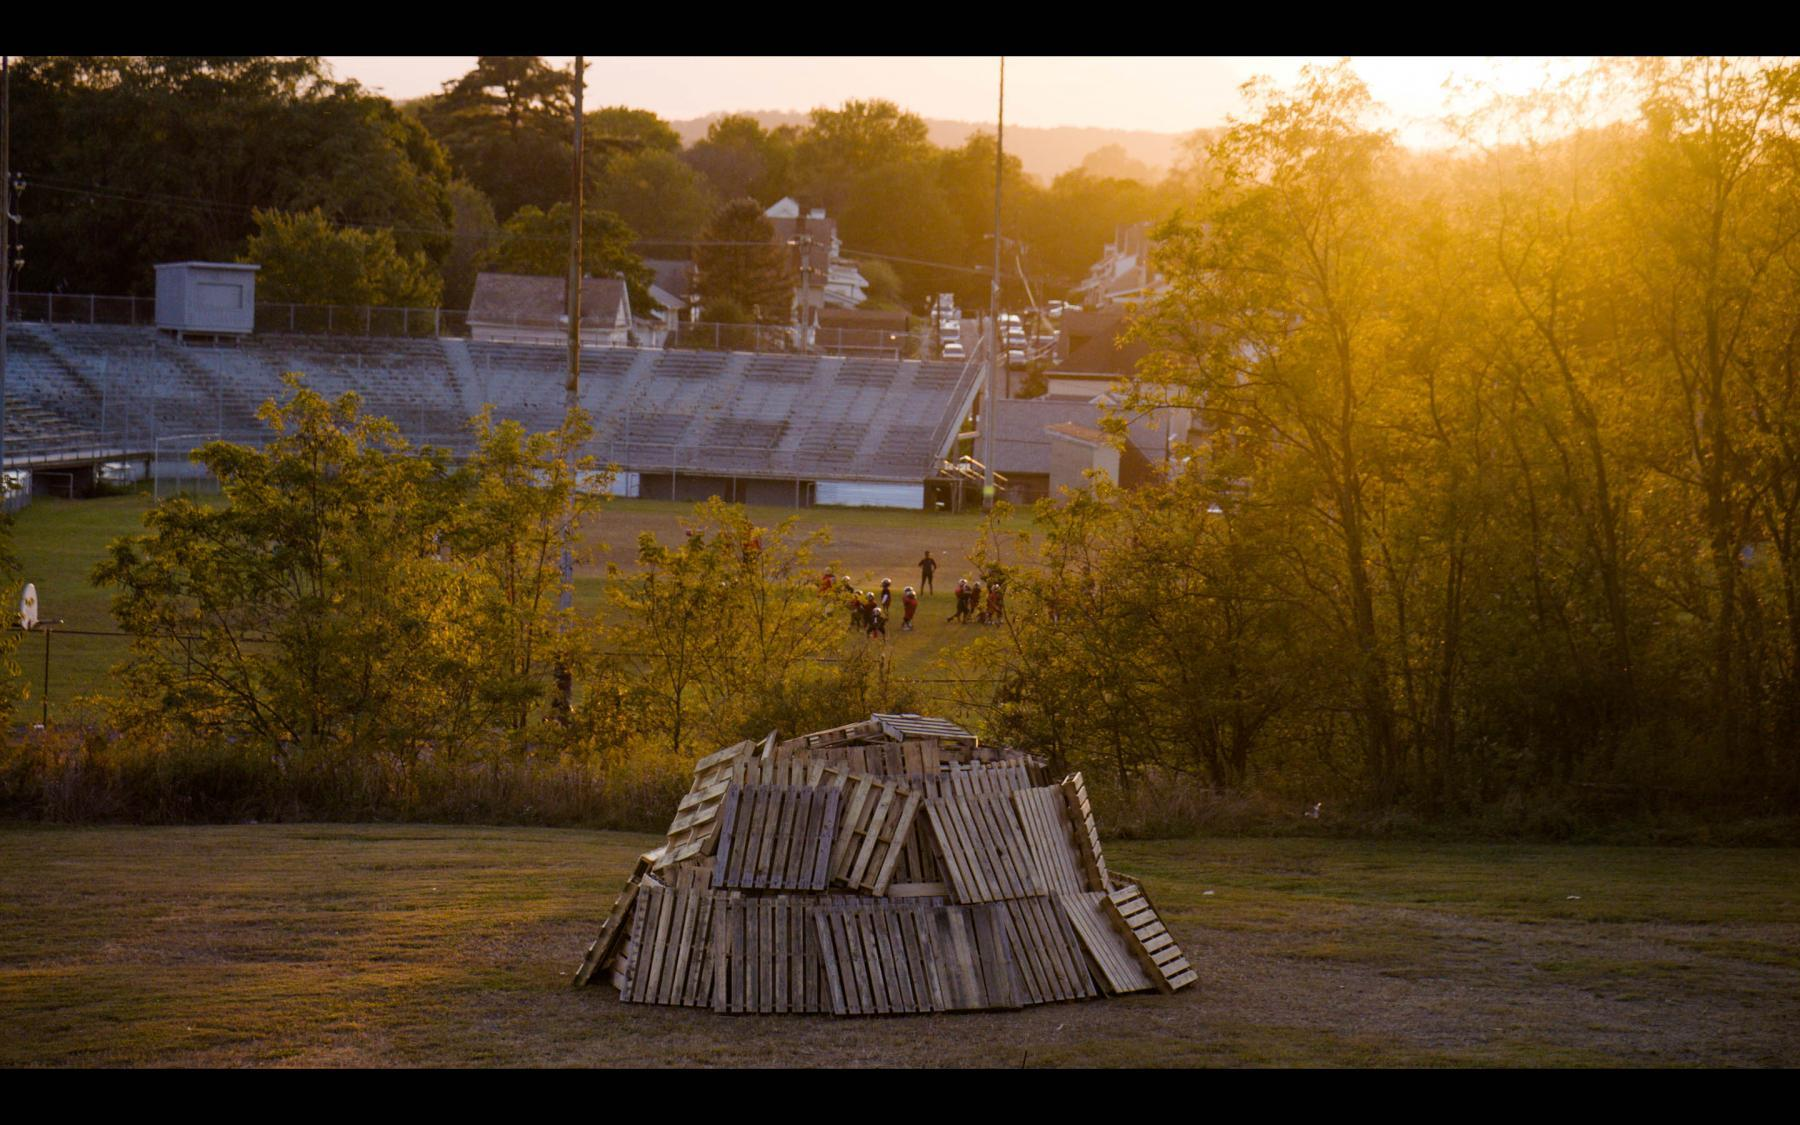 A screenshot from Megan Ruffe's forthcoming documentary about the history of Aliquippa, Pennsylvania.